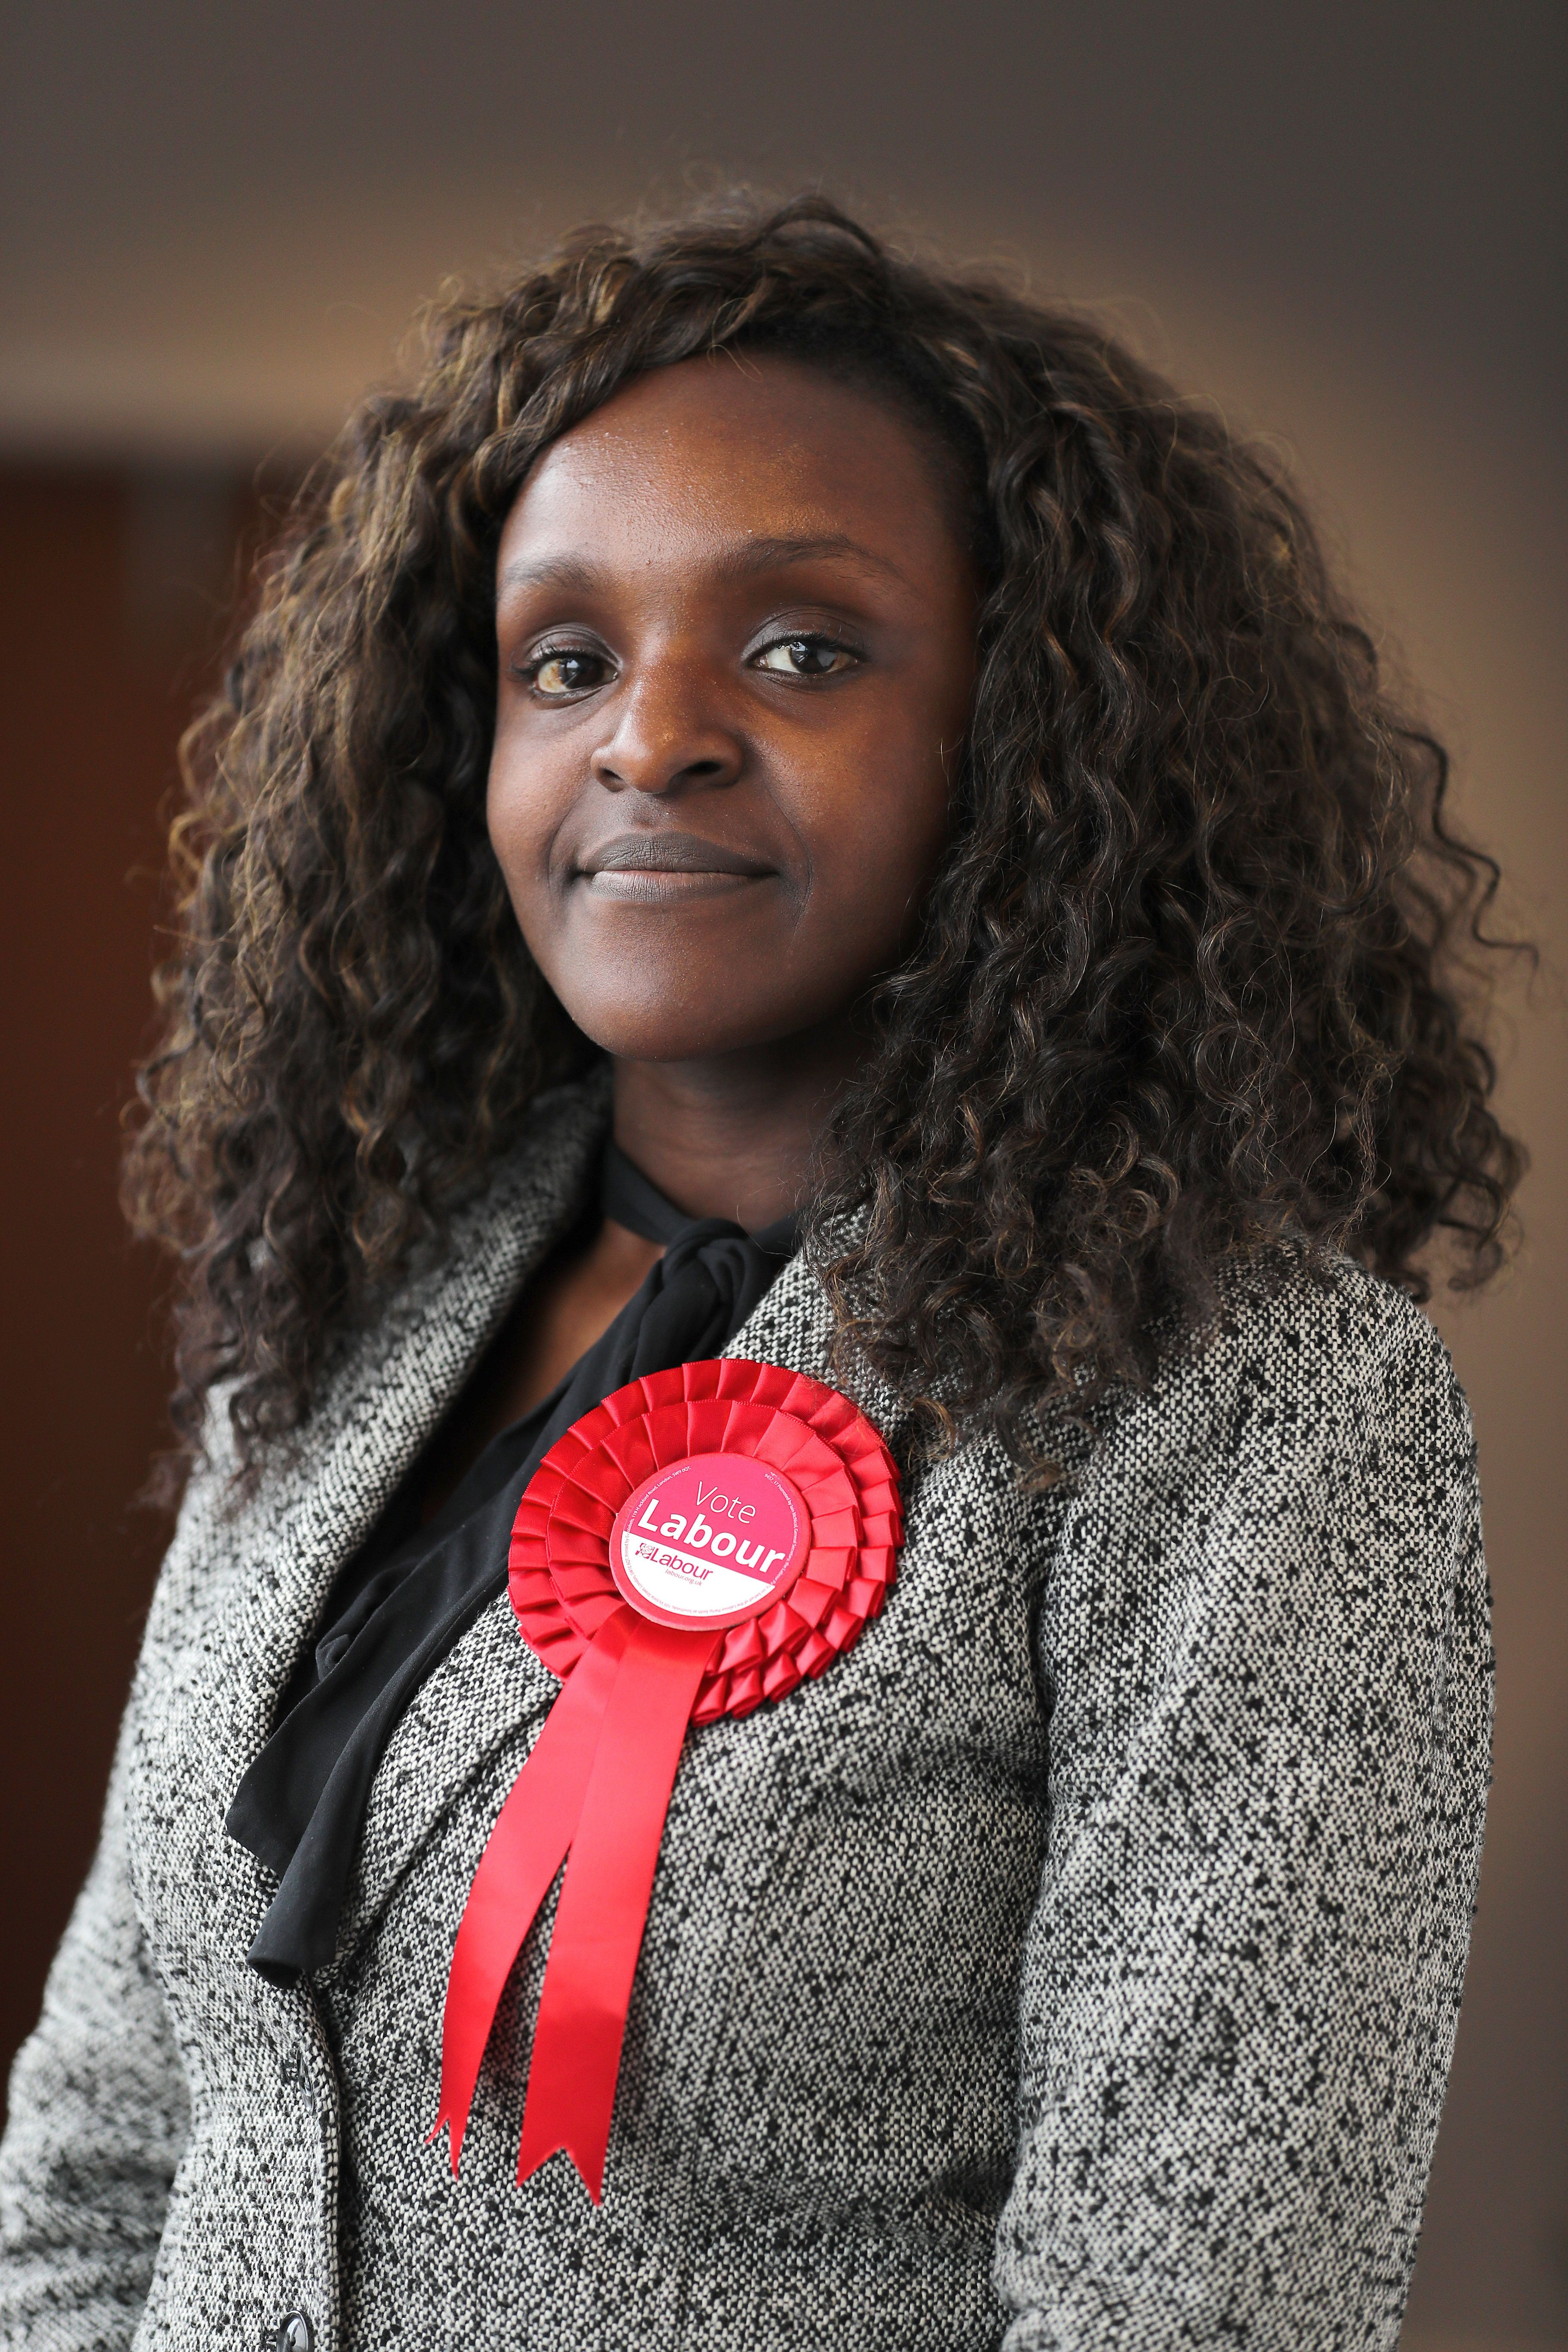 Brother Of Fiona Onasanya Is 'A Dishonest Chancer', Labour MP's Lawyer Tells